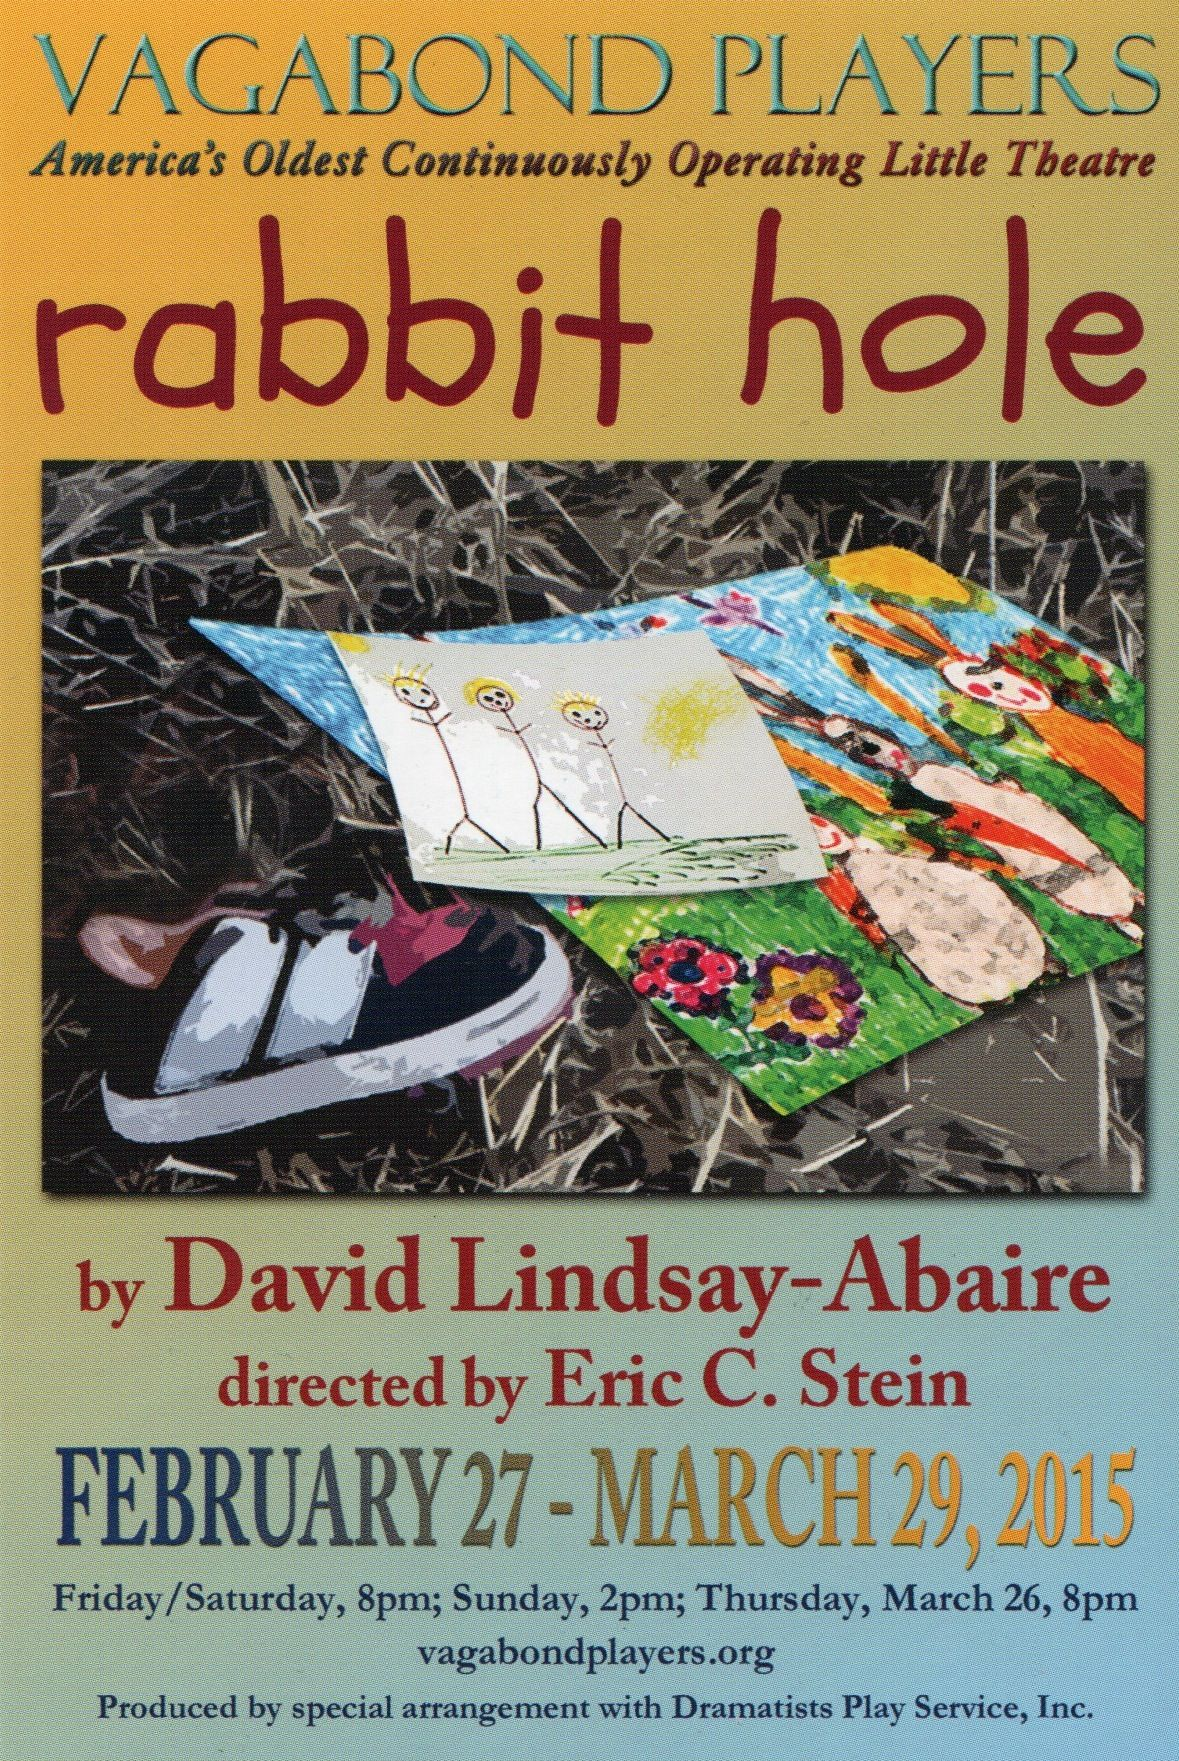 Check out their current offering at vagabondplayers.org. Rabbit Hole from February 27, 2015 to March 29, 2015.